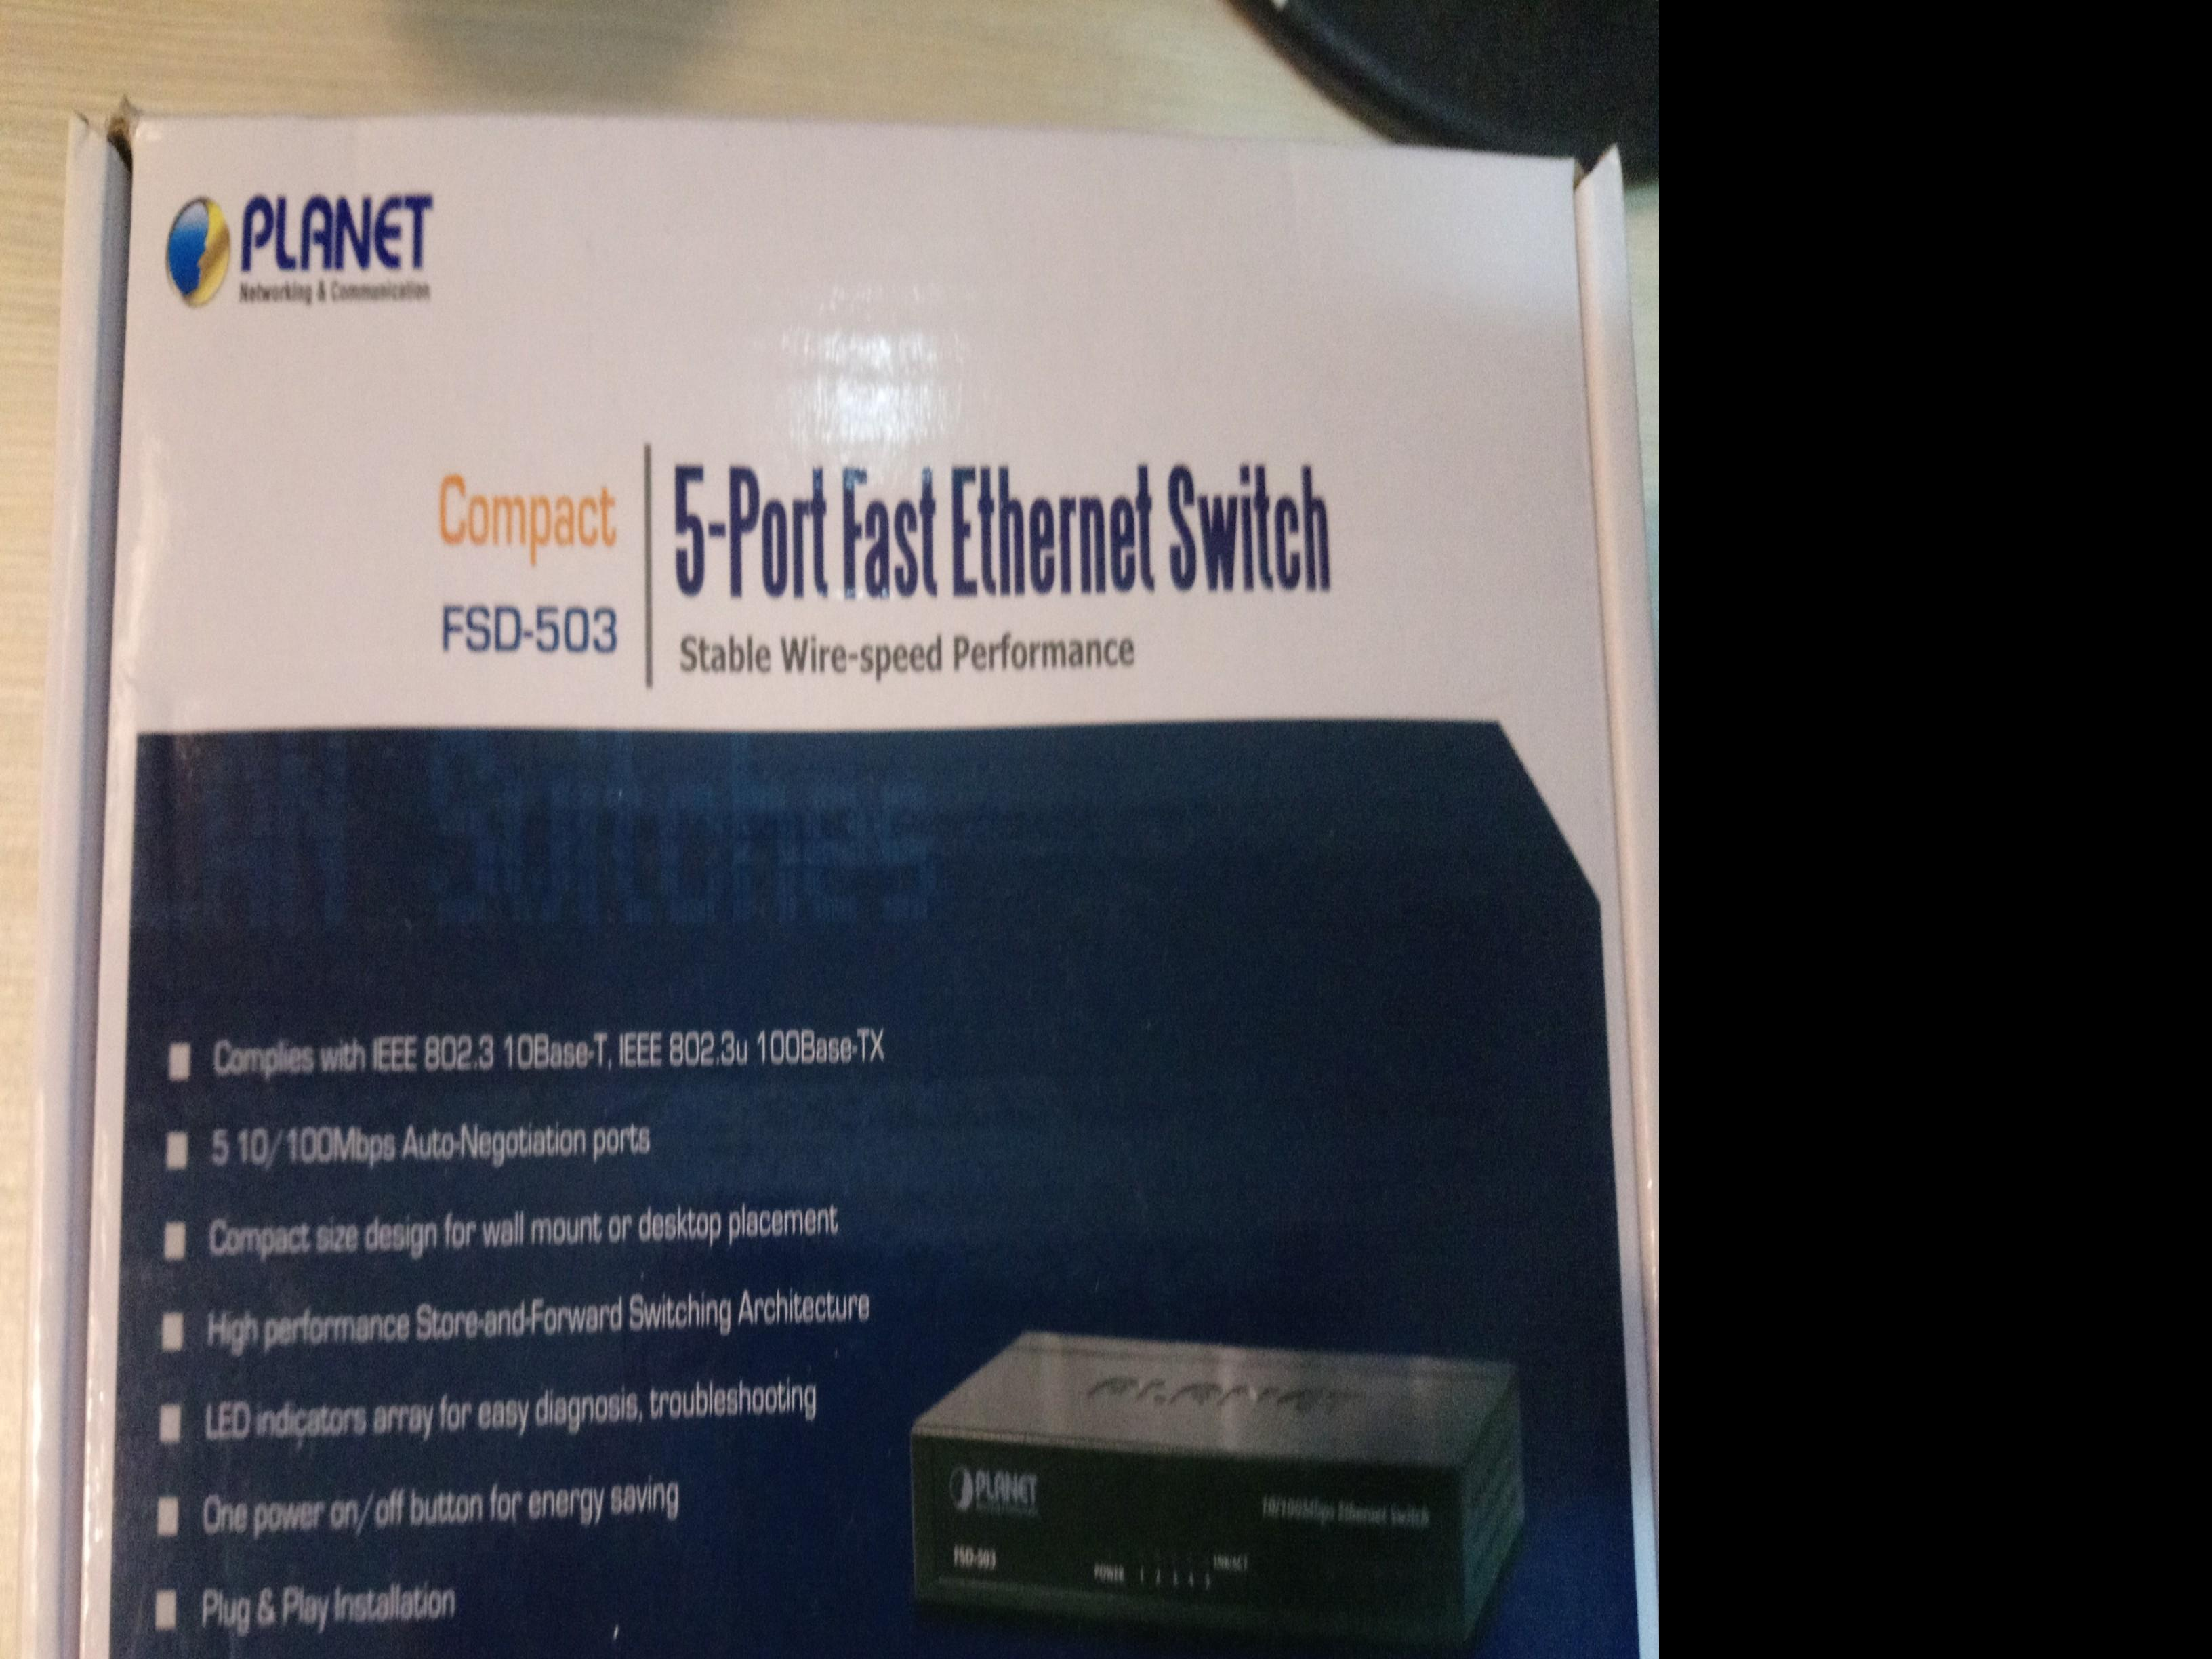 Planet 5 portfasr ethernet switch